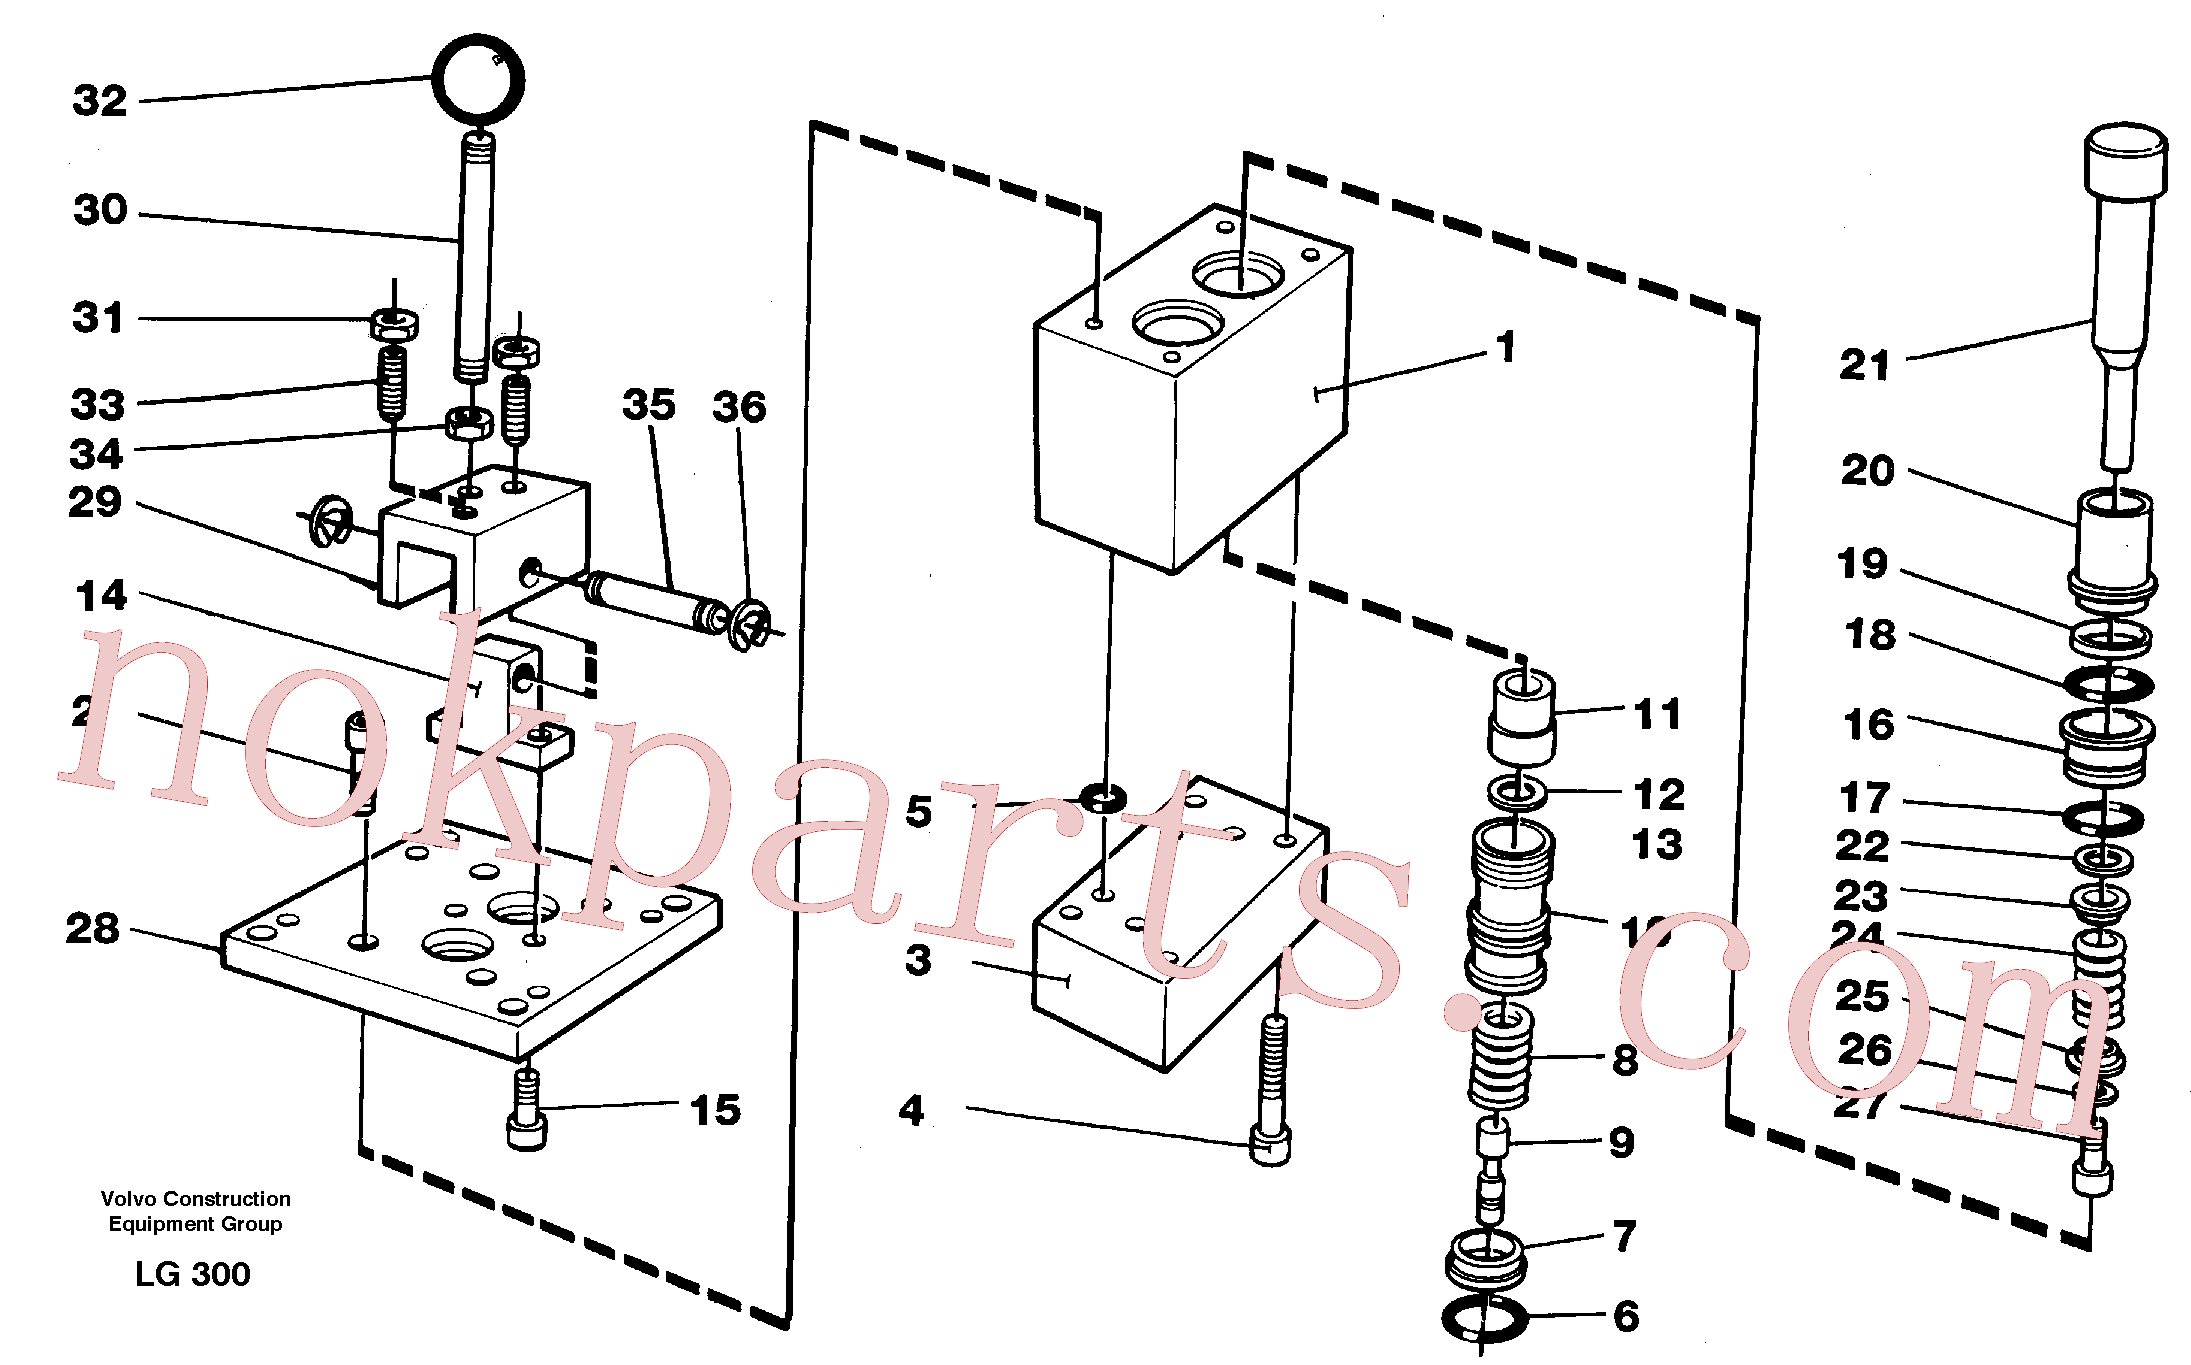 VOE14244422 for Volvo Control pressure valve(LG300 assembly)